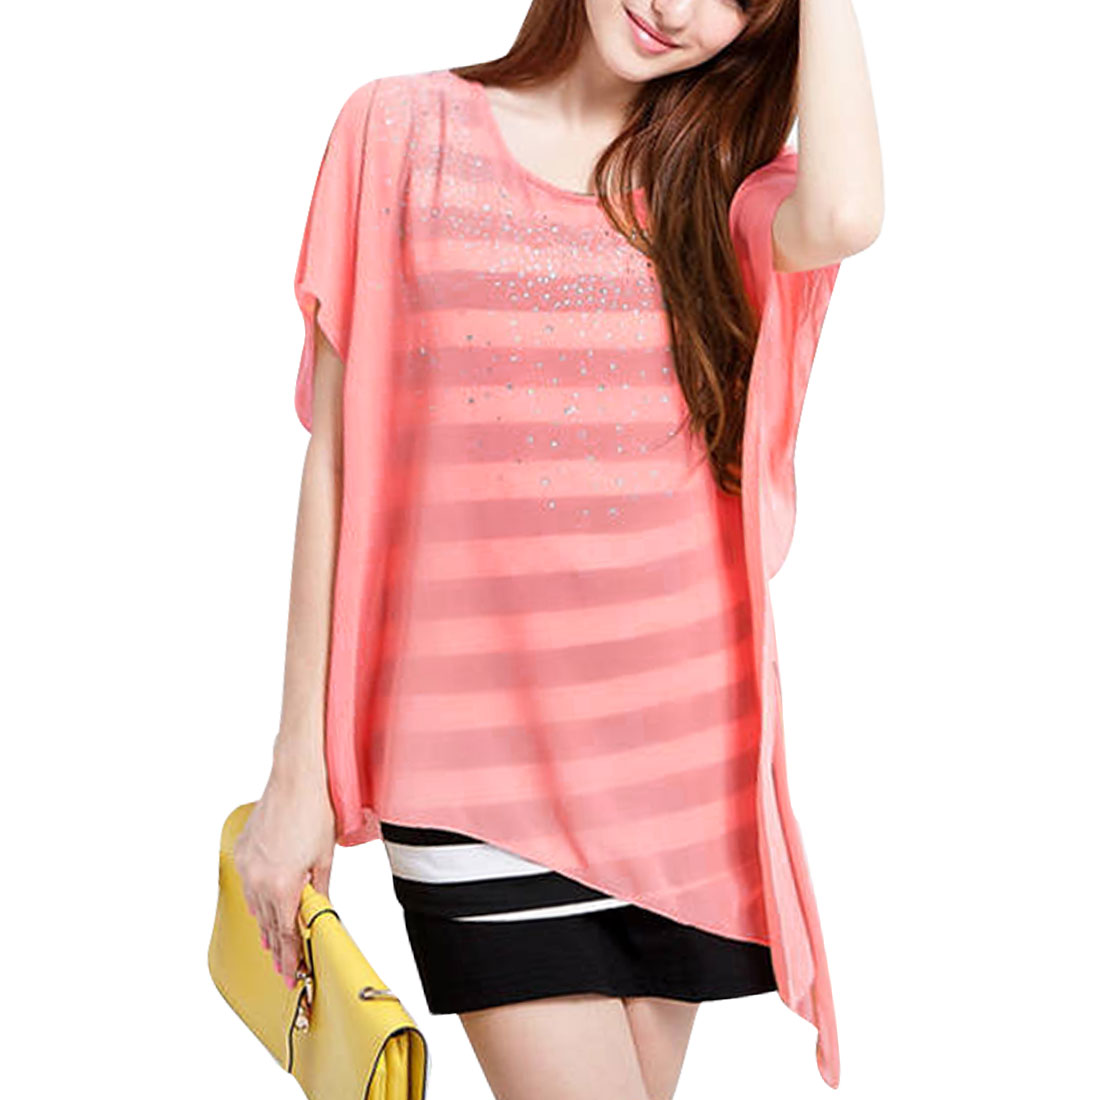 Lady Pink Asymmetrial Sleeve Layered Shirts Shirt Top XS